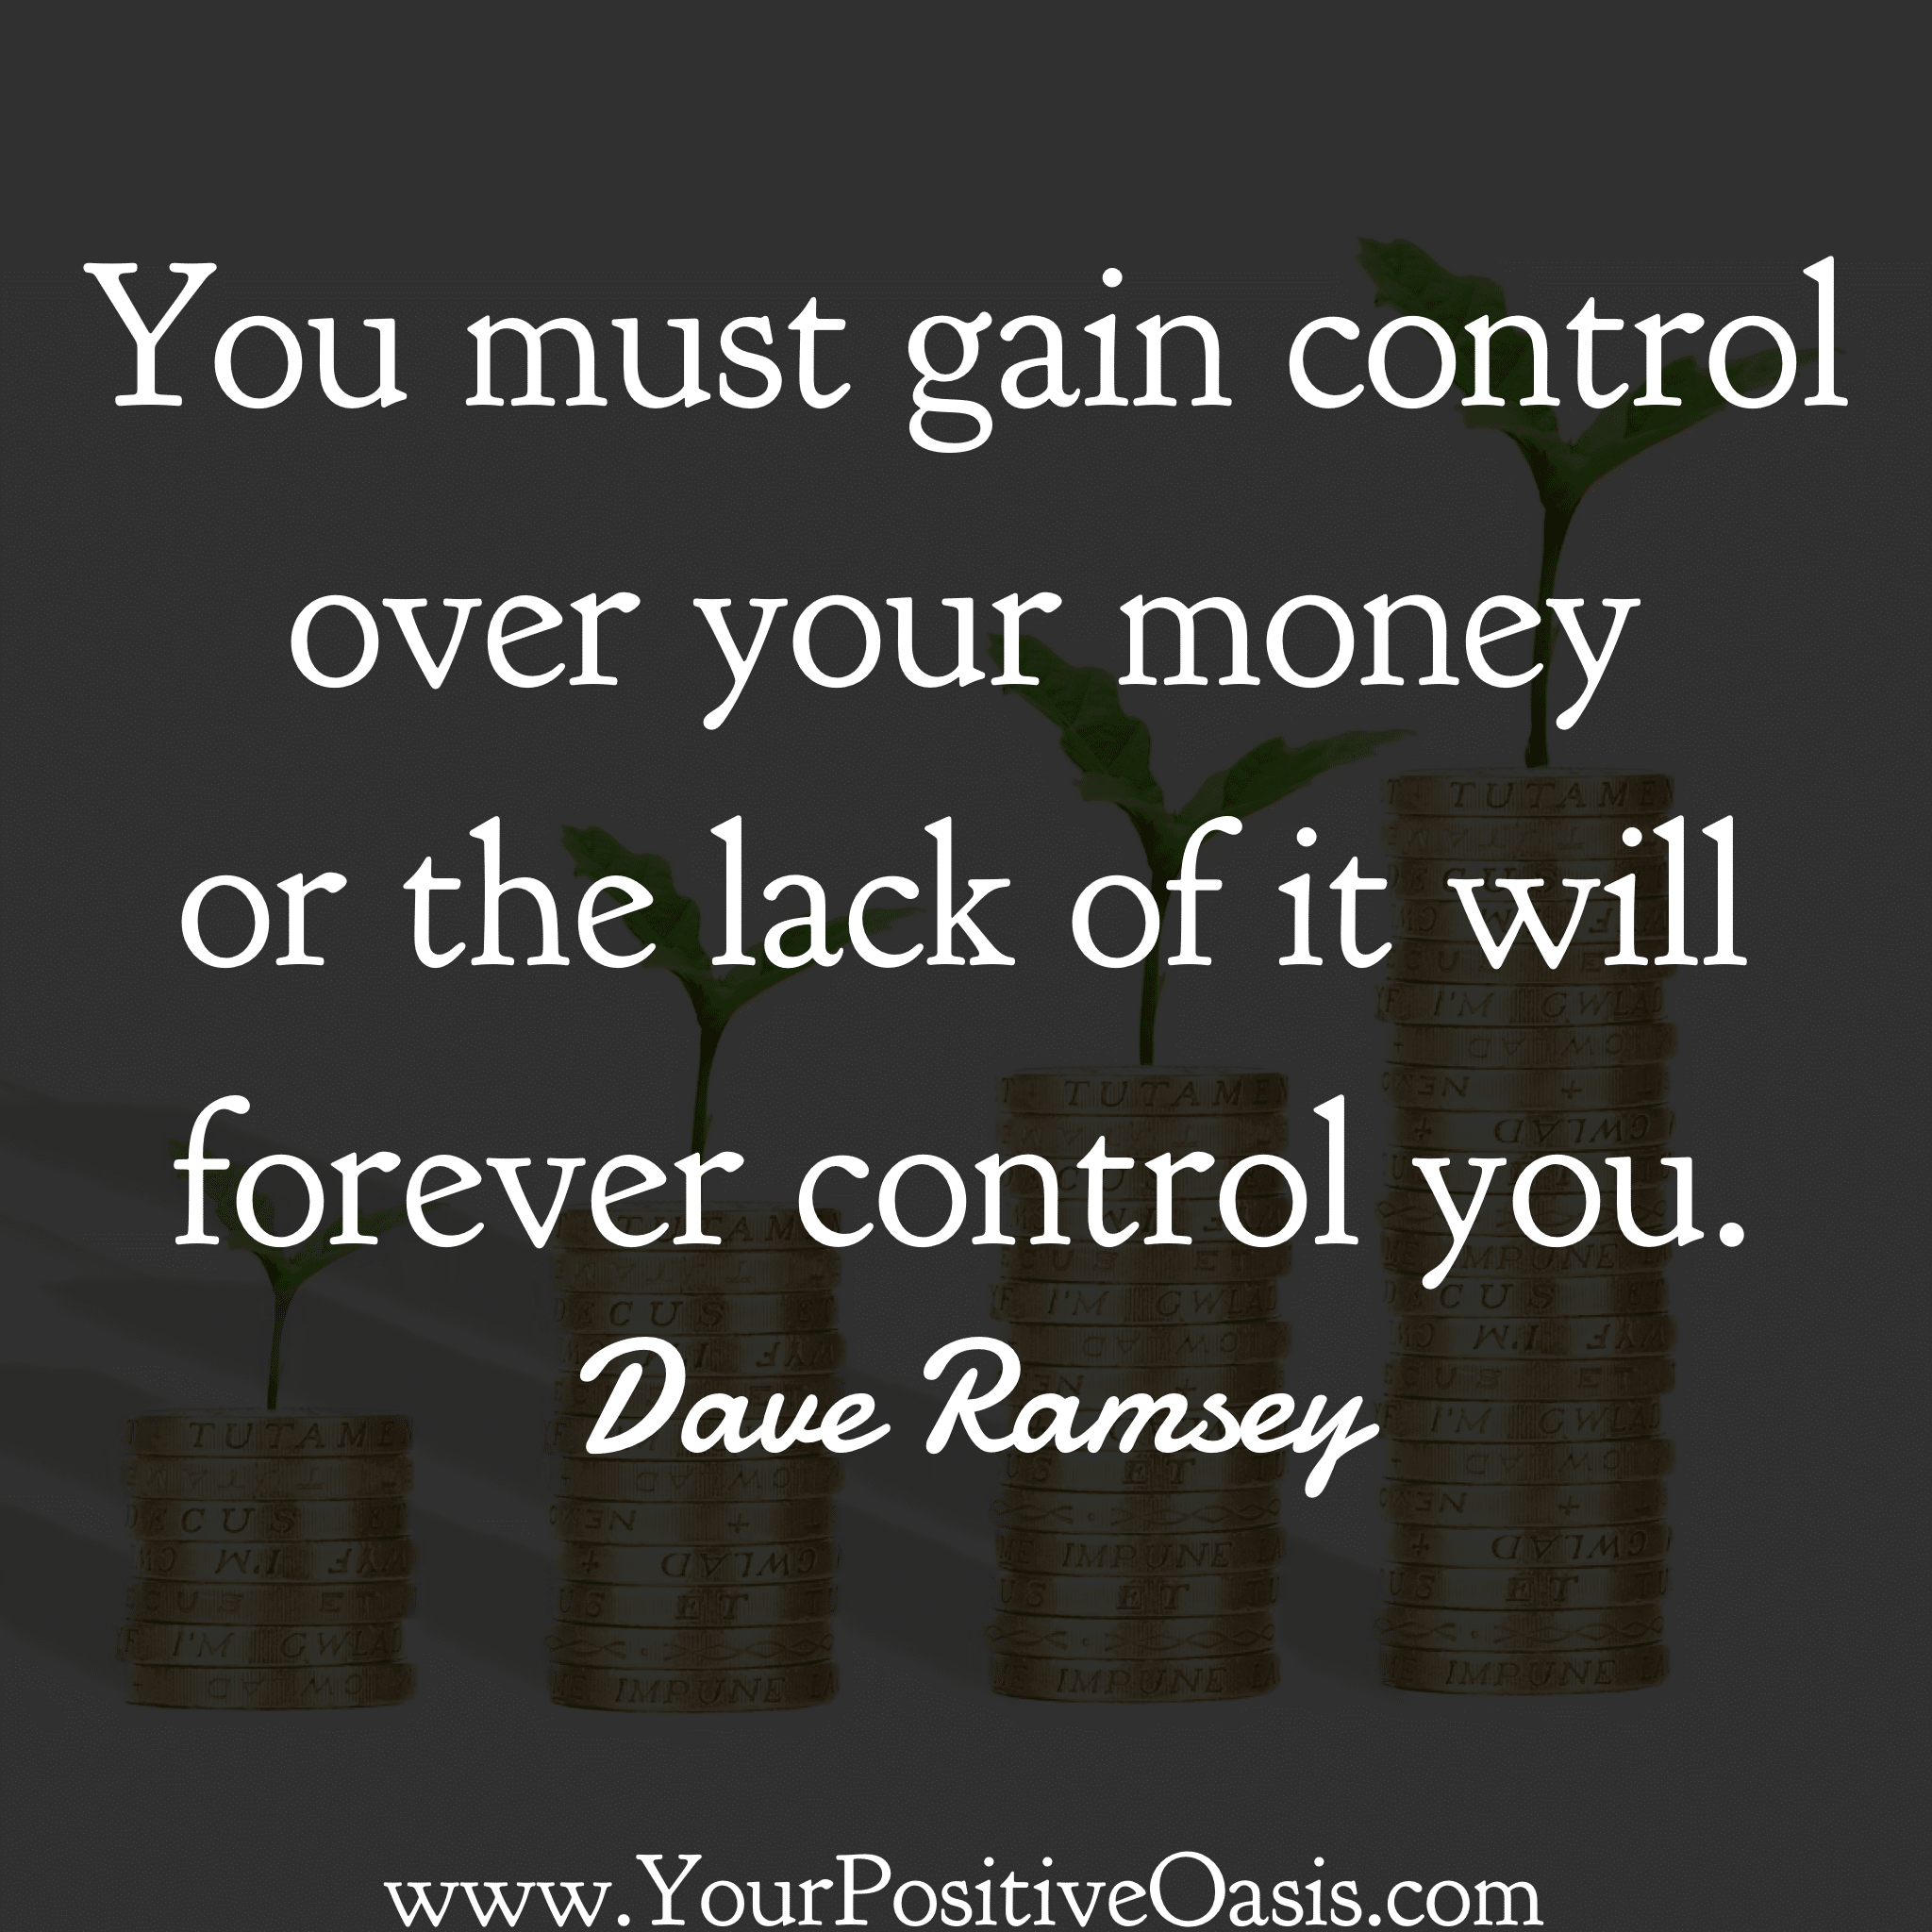 Dave Ramsey Quotes